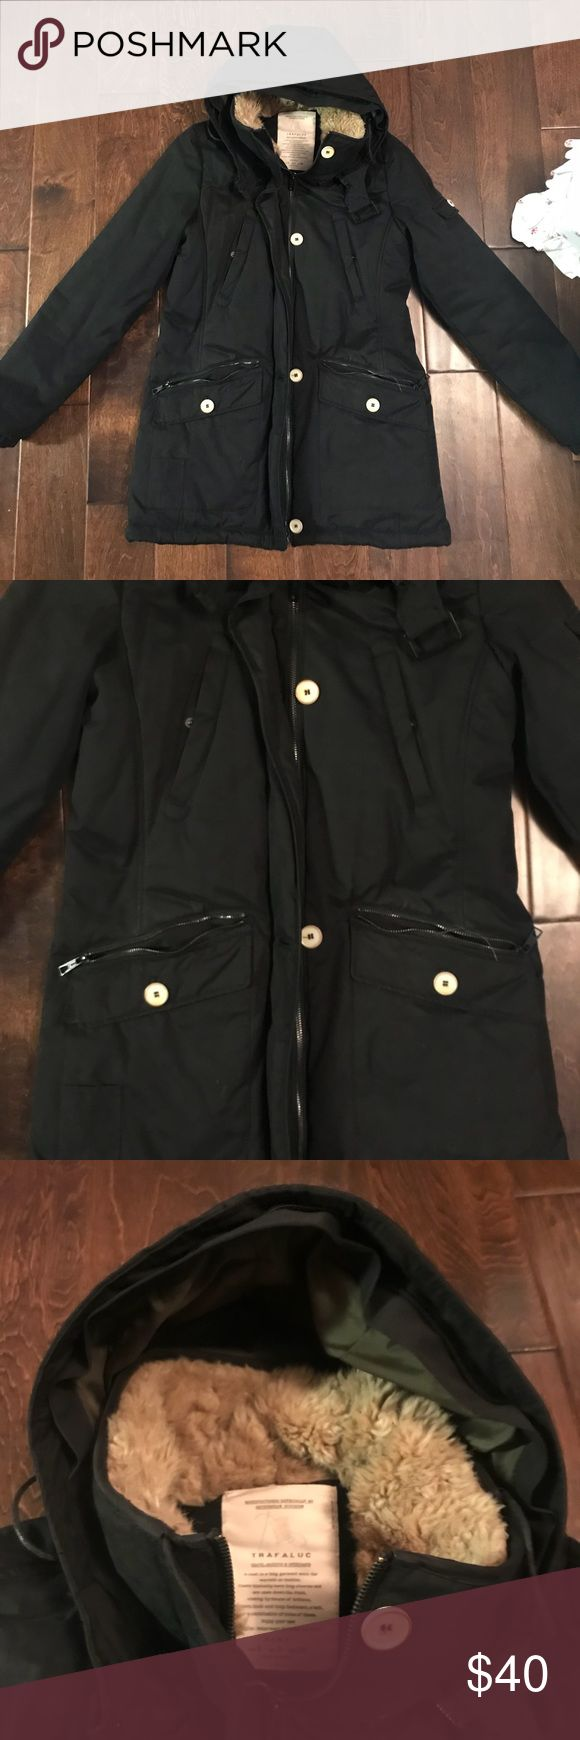 Zara black winter coat Zara winter coat. It has been use years ago but I'm great condition. It had a fitting hood with a high zip neck with a furry inside. The jacket material is night a sturdy and doesn't let wing through. It has for outside pockets and two inside pockets. Nice button details and the slate button is inside. Zara Jackets & Coats